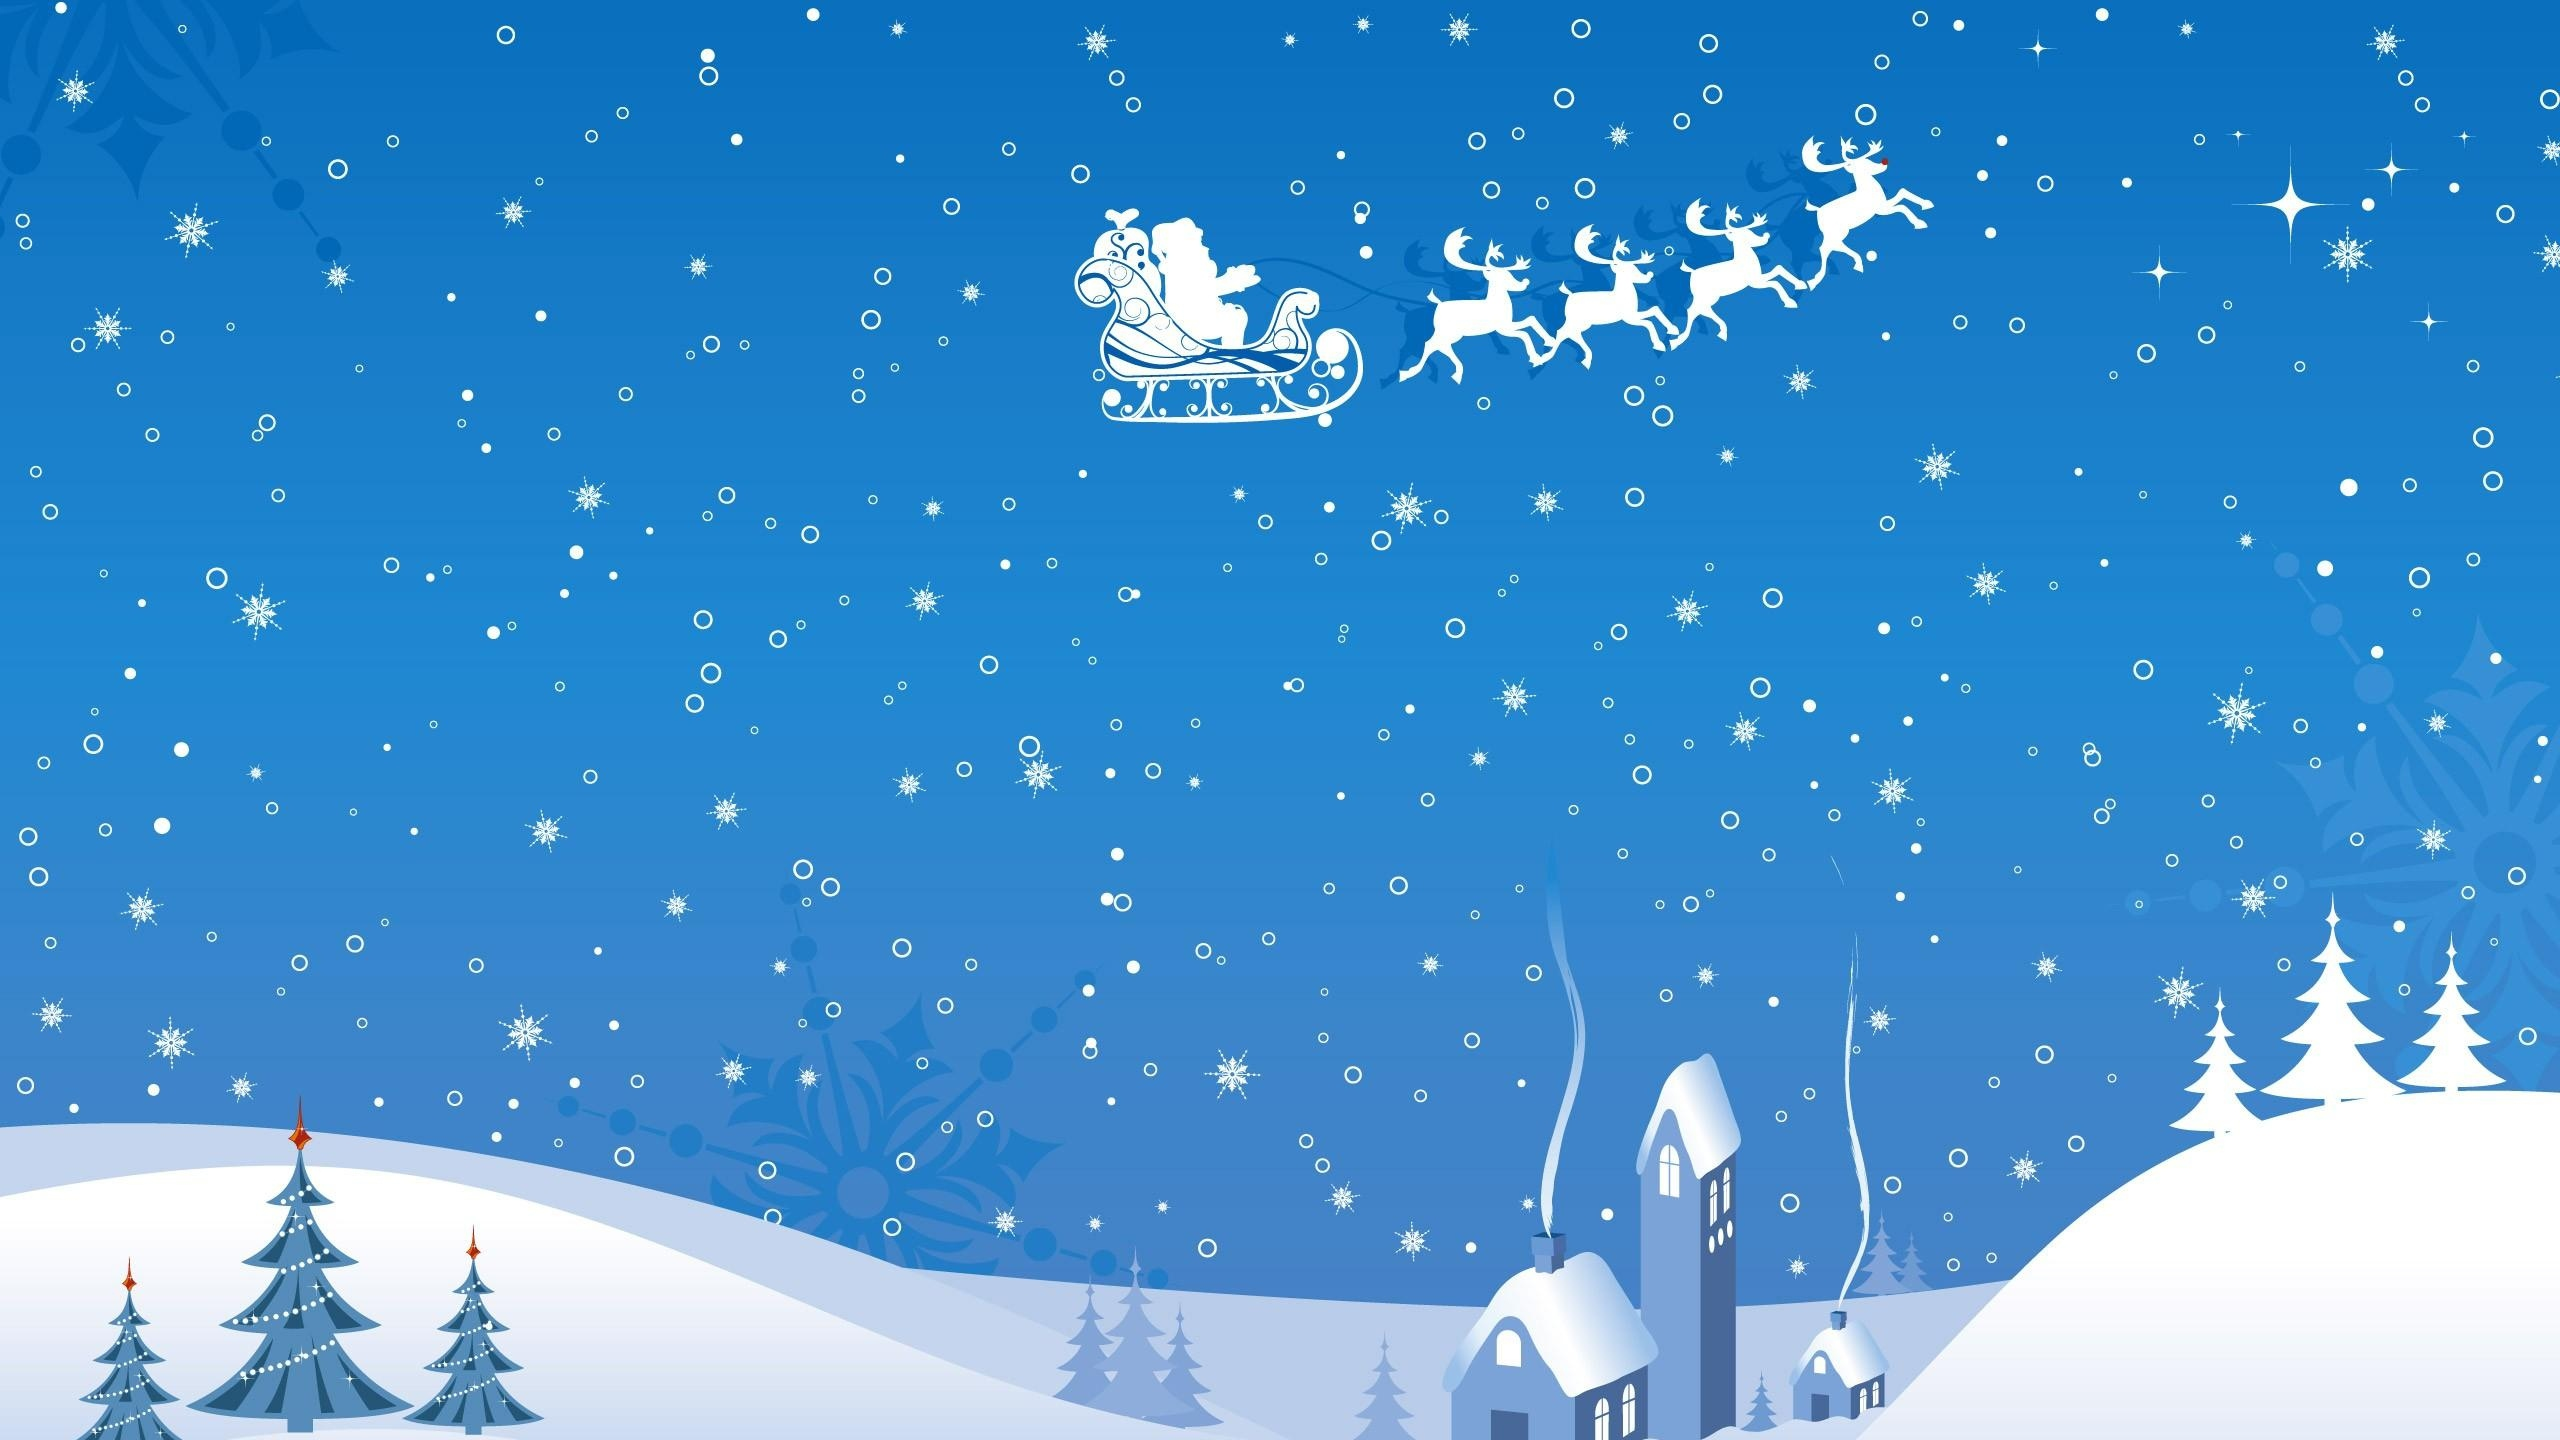 santa claus wallpaper (35)